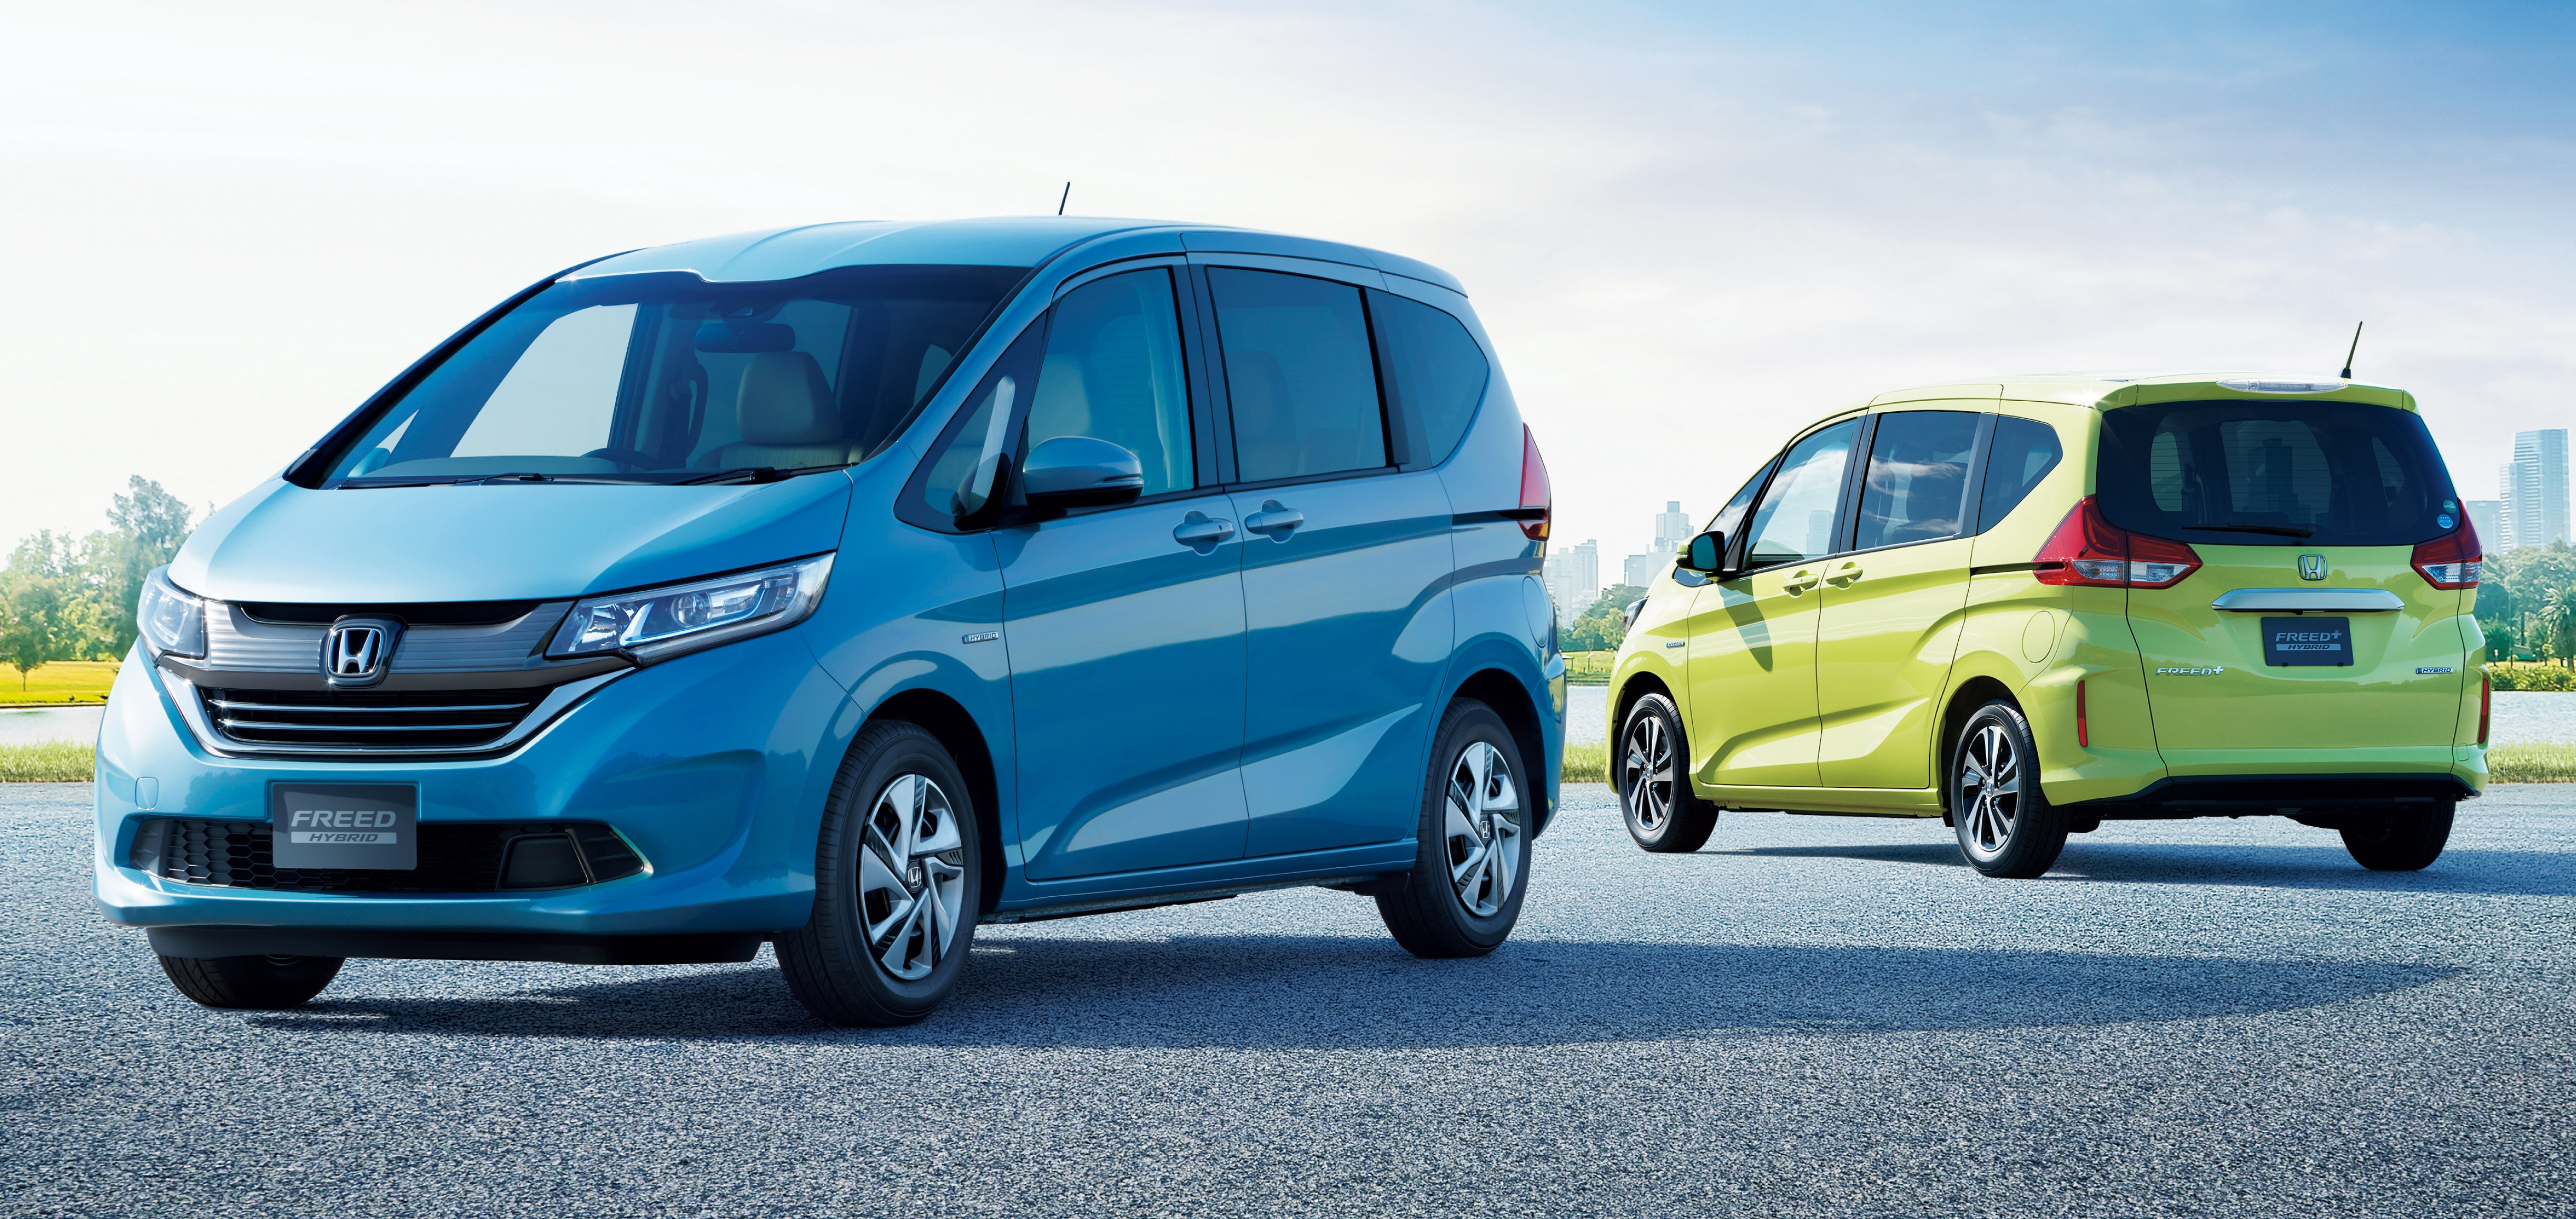 All-new 2016 Honda Freed goes on sale in Japan